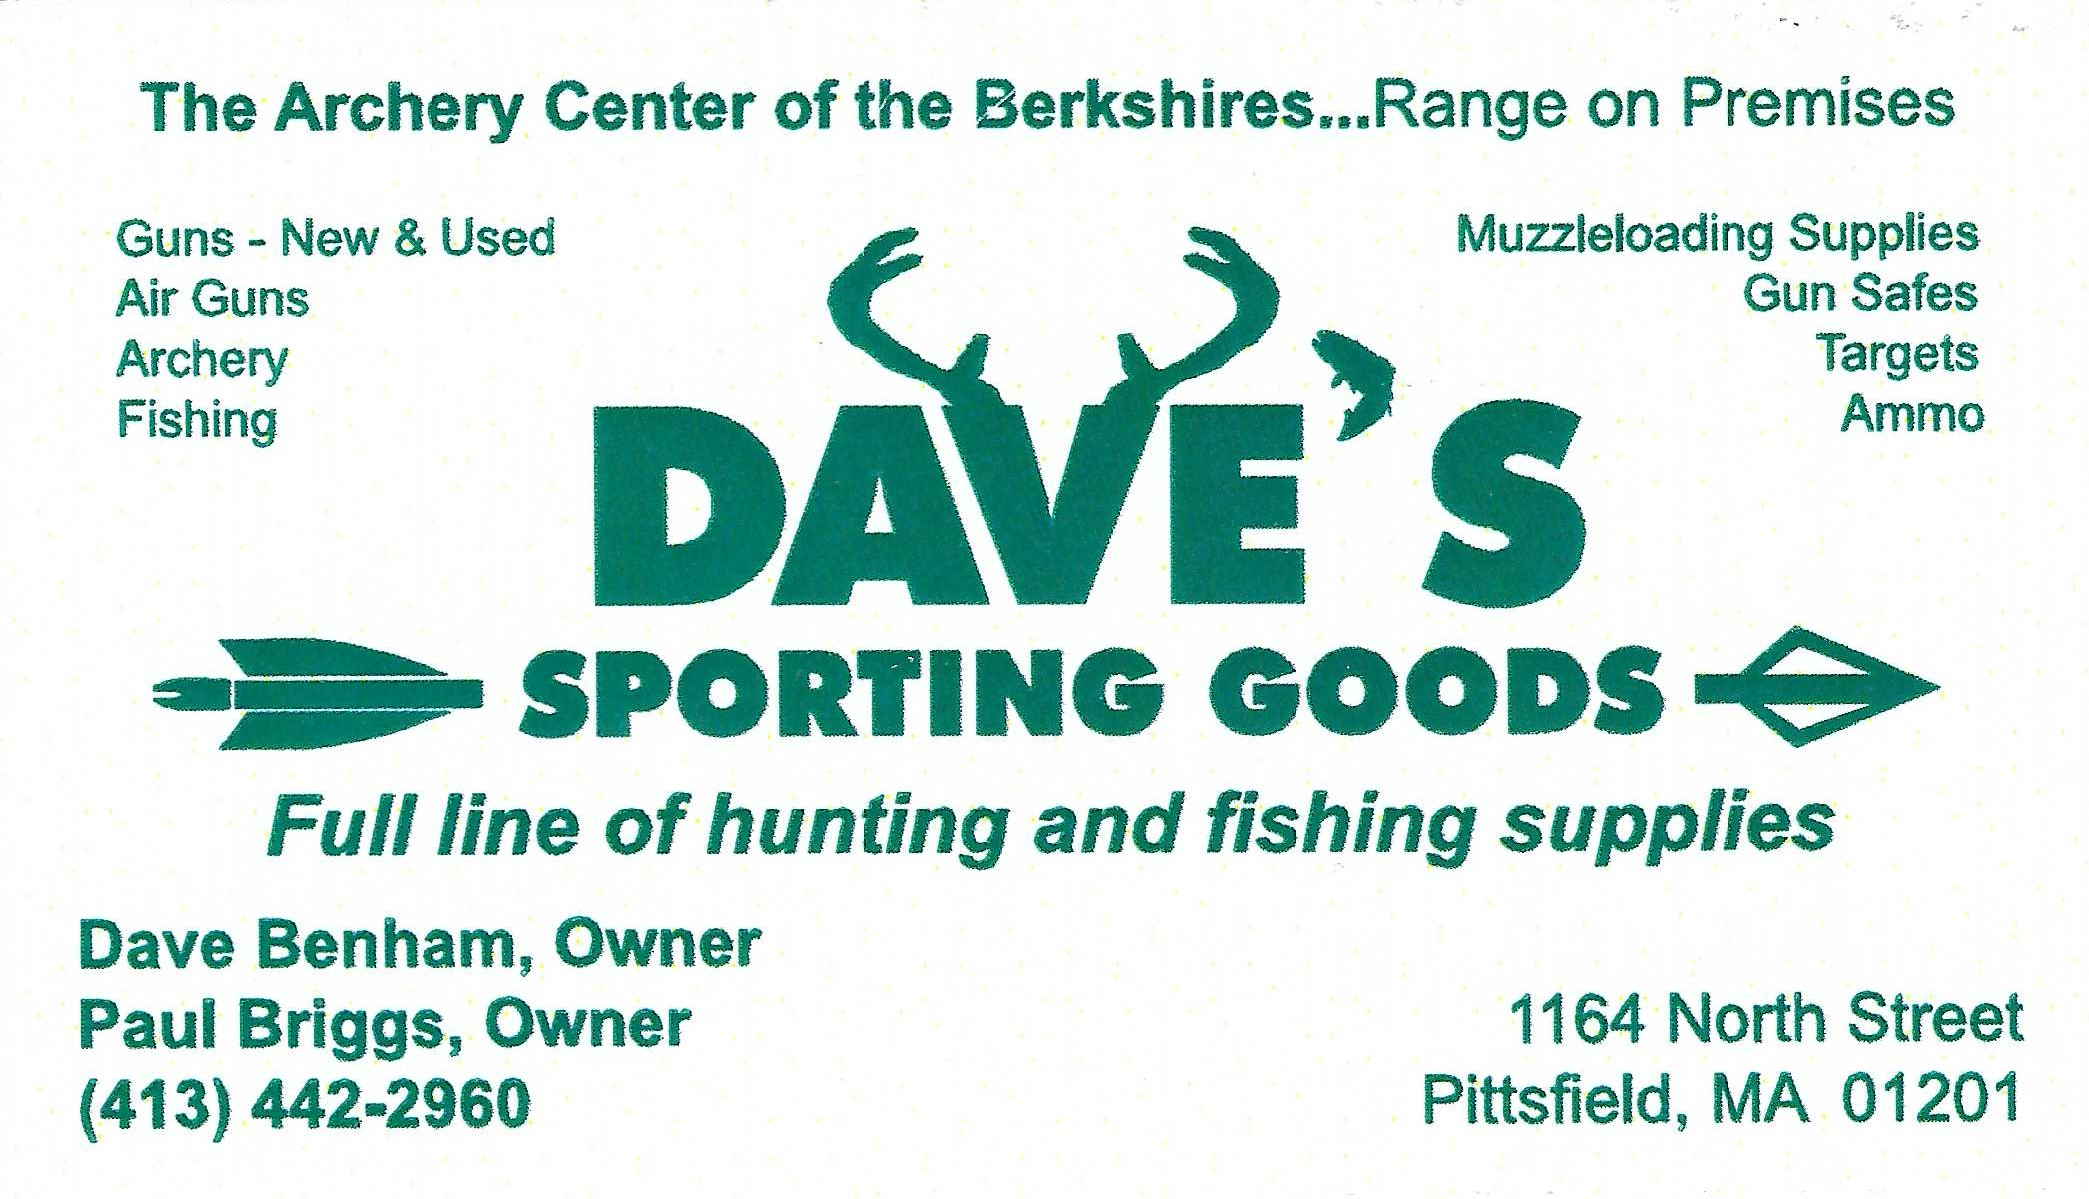 Dave's Sporting Goods